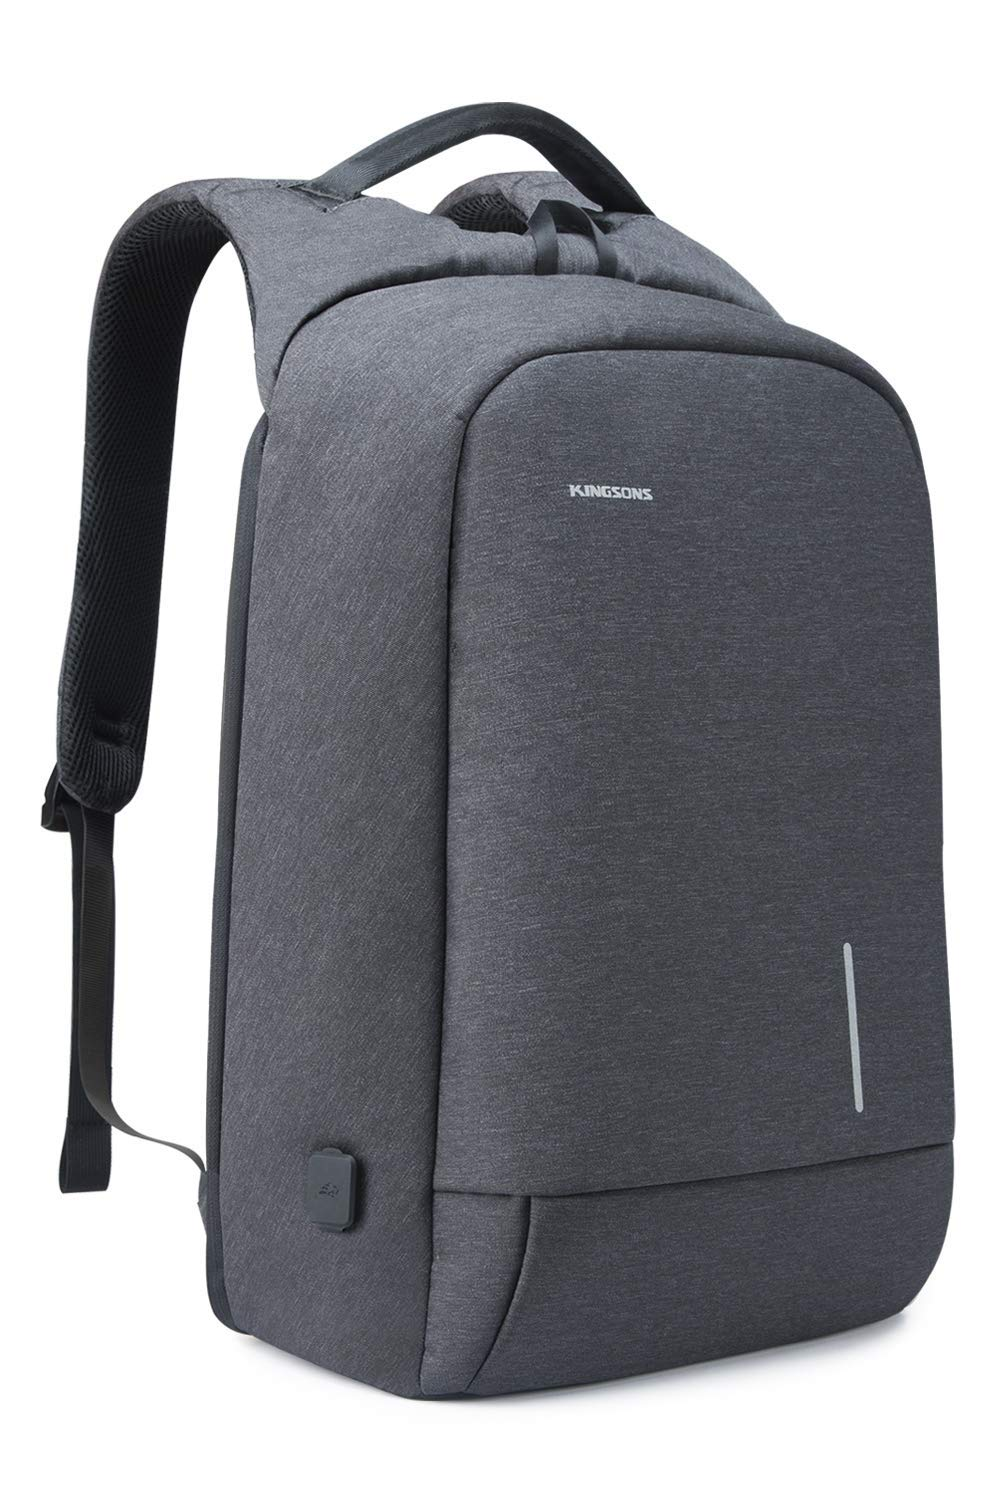 Lightweight Travel Laptop Backpack, Kingsons Business Travel Computer Bag Slim Laptop Rucksack 15.6 with USB Charging Port TSA Lock Anti Theft Bag Water Resistant for 15.6-Inch Laptop Bag Dark Grey